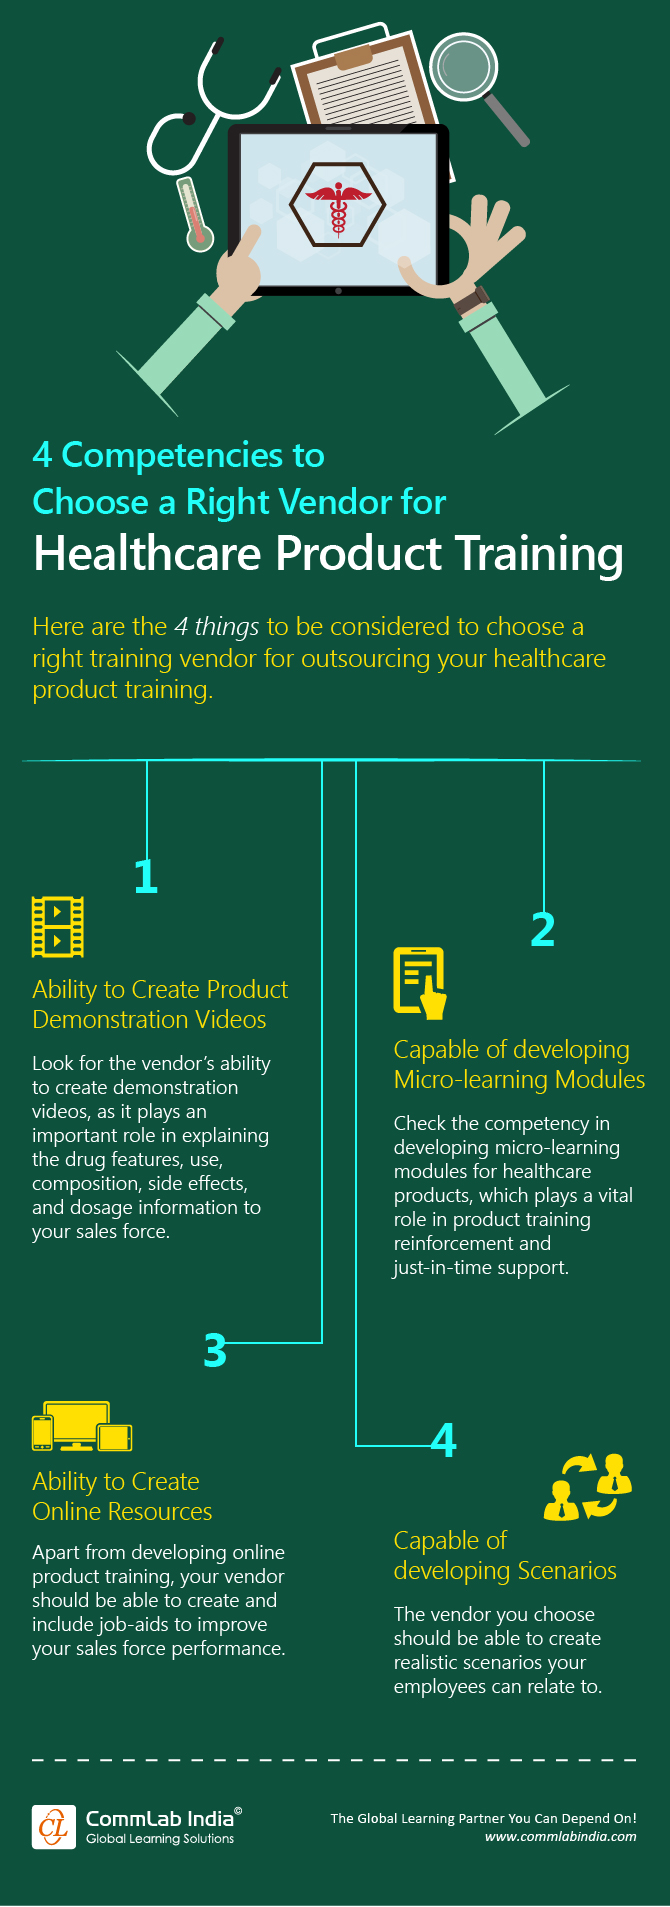 4 Competencies to Choose a Right Vendor for Healthcare Product Training [Infographic]